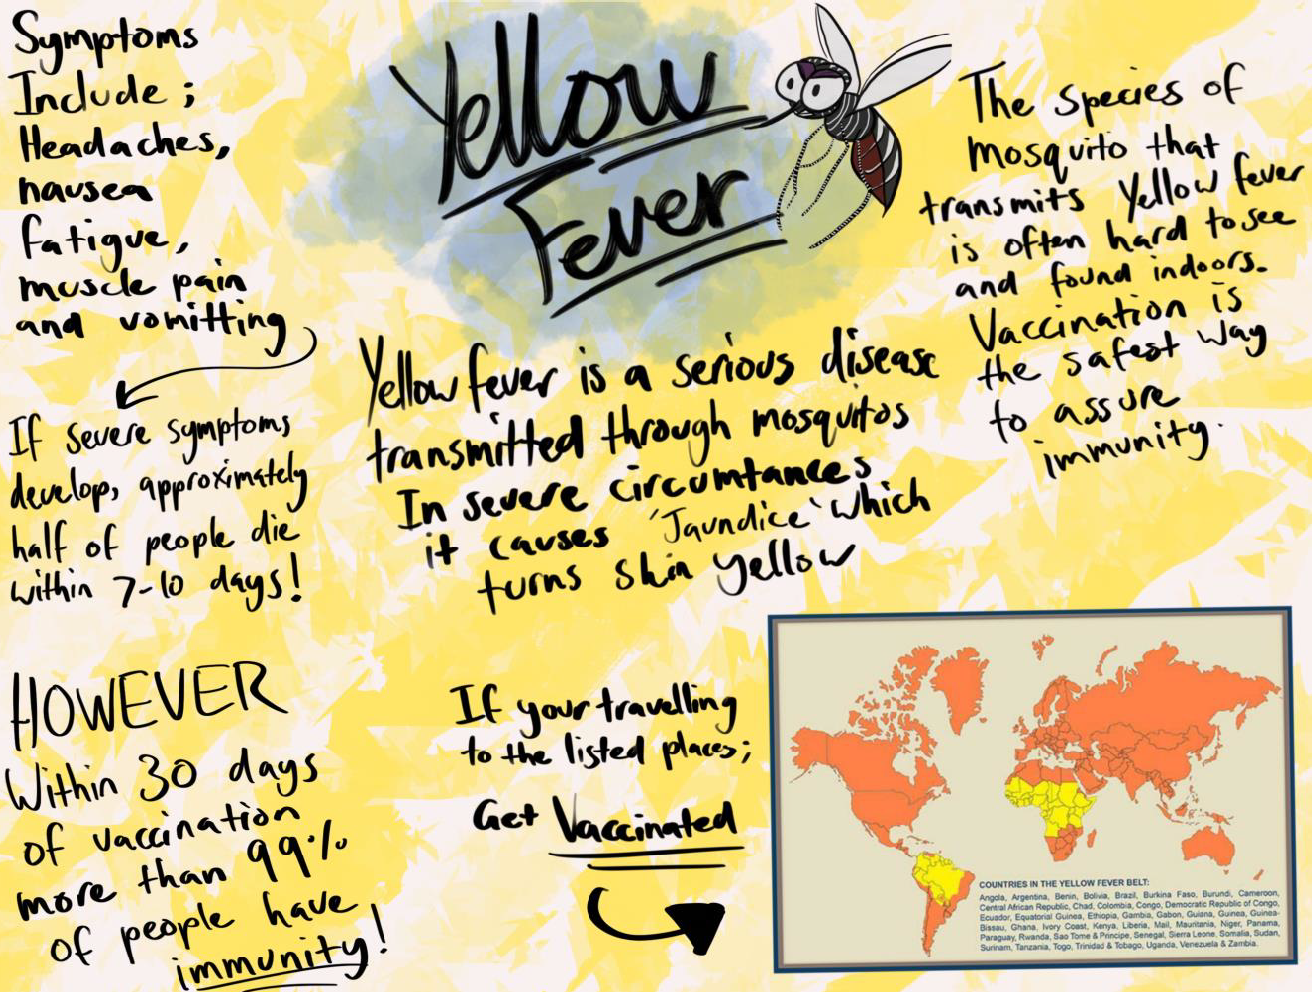 Shows a poster with hand written notes by students about the cause, symptoms and location of yellow fever - also encourages vaccination.